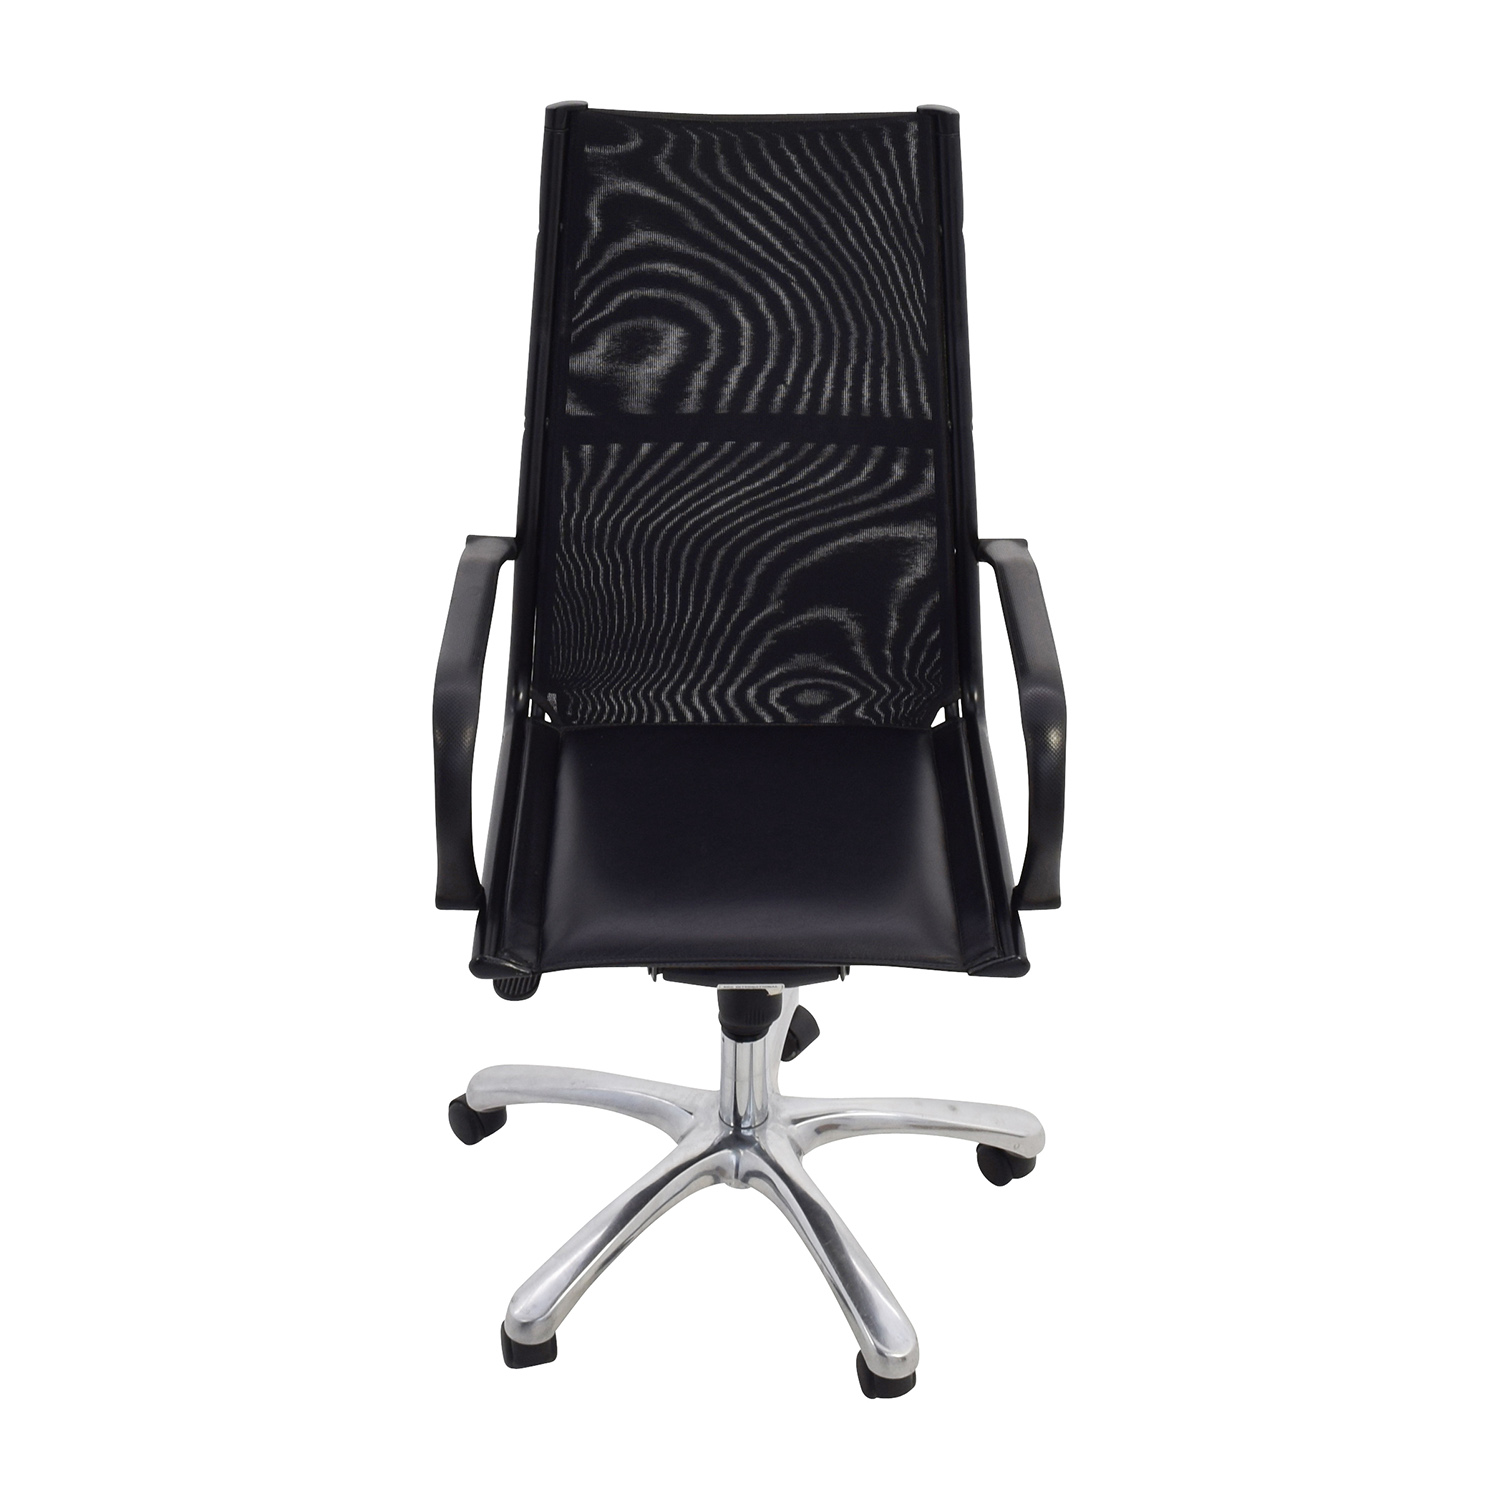 ERG International ERG International Black Office Chair Black